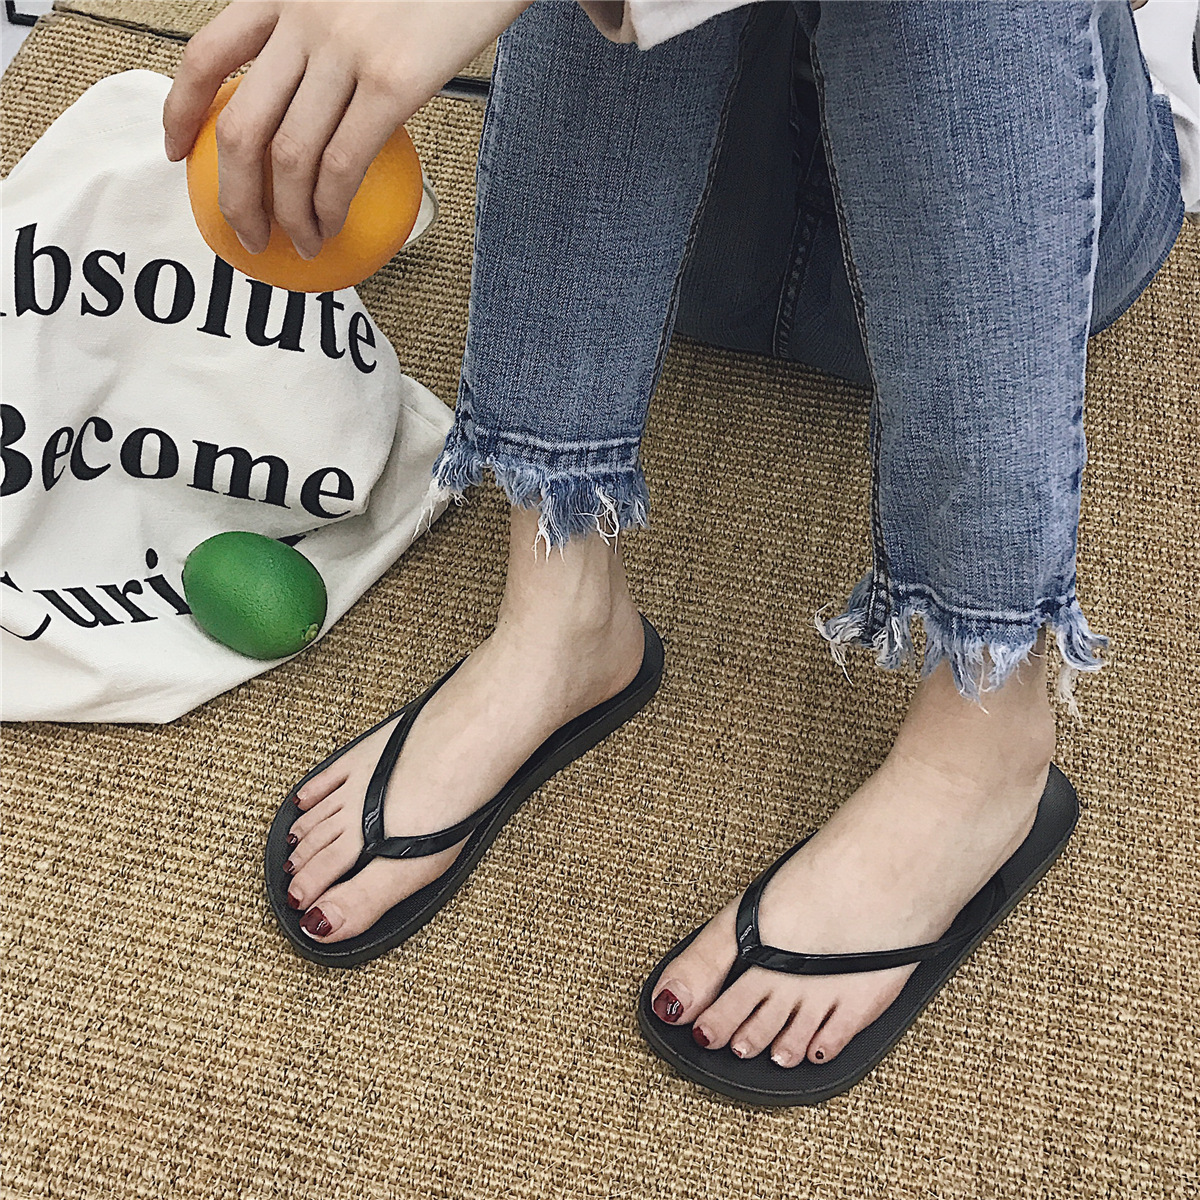 Schnelle Lieferung Female Summer Non-slip Flat-bottomed Herringbone Solid Color Pinch Sandals And Slippers Outside Wearing Female Beach Shoes